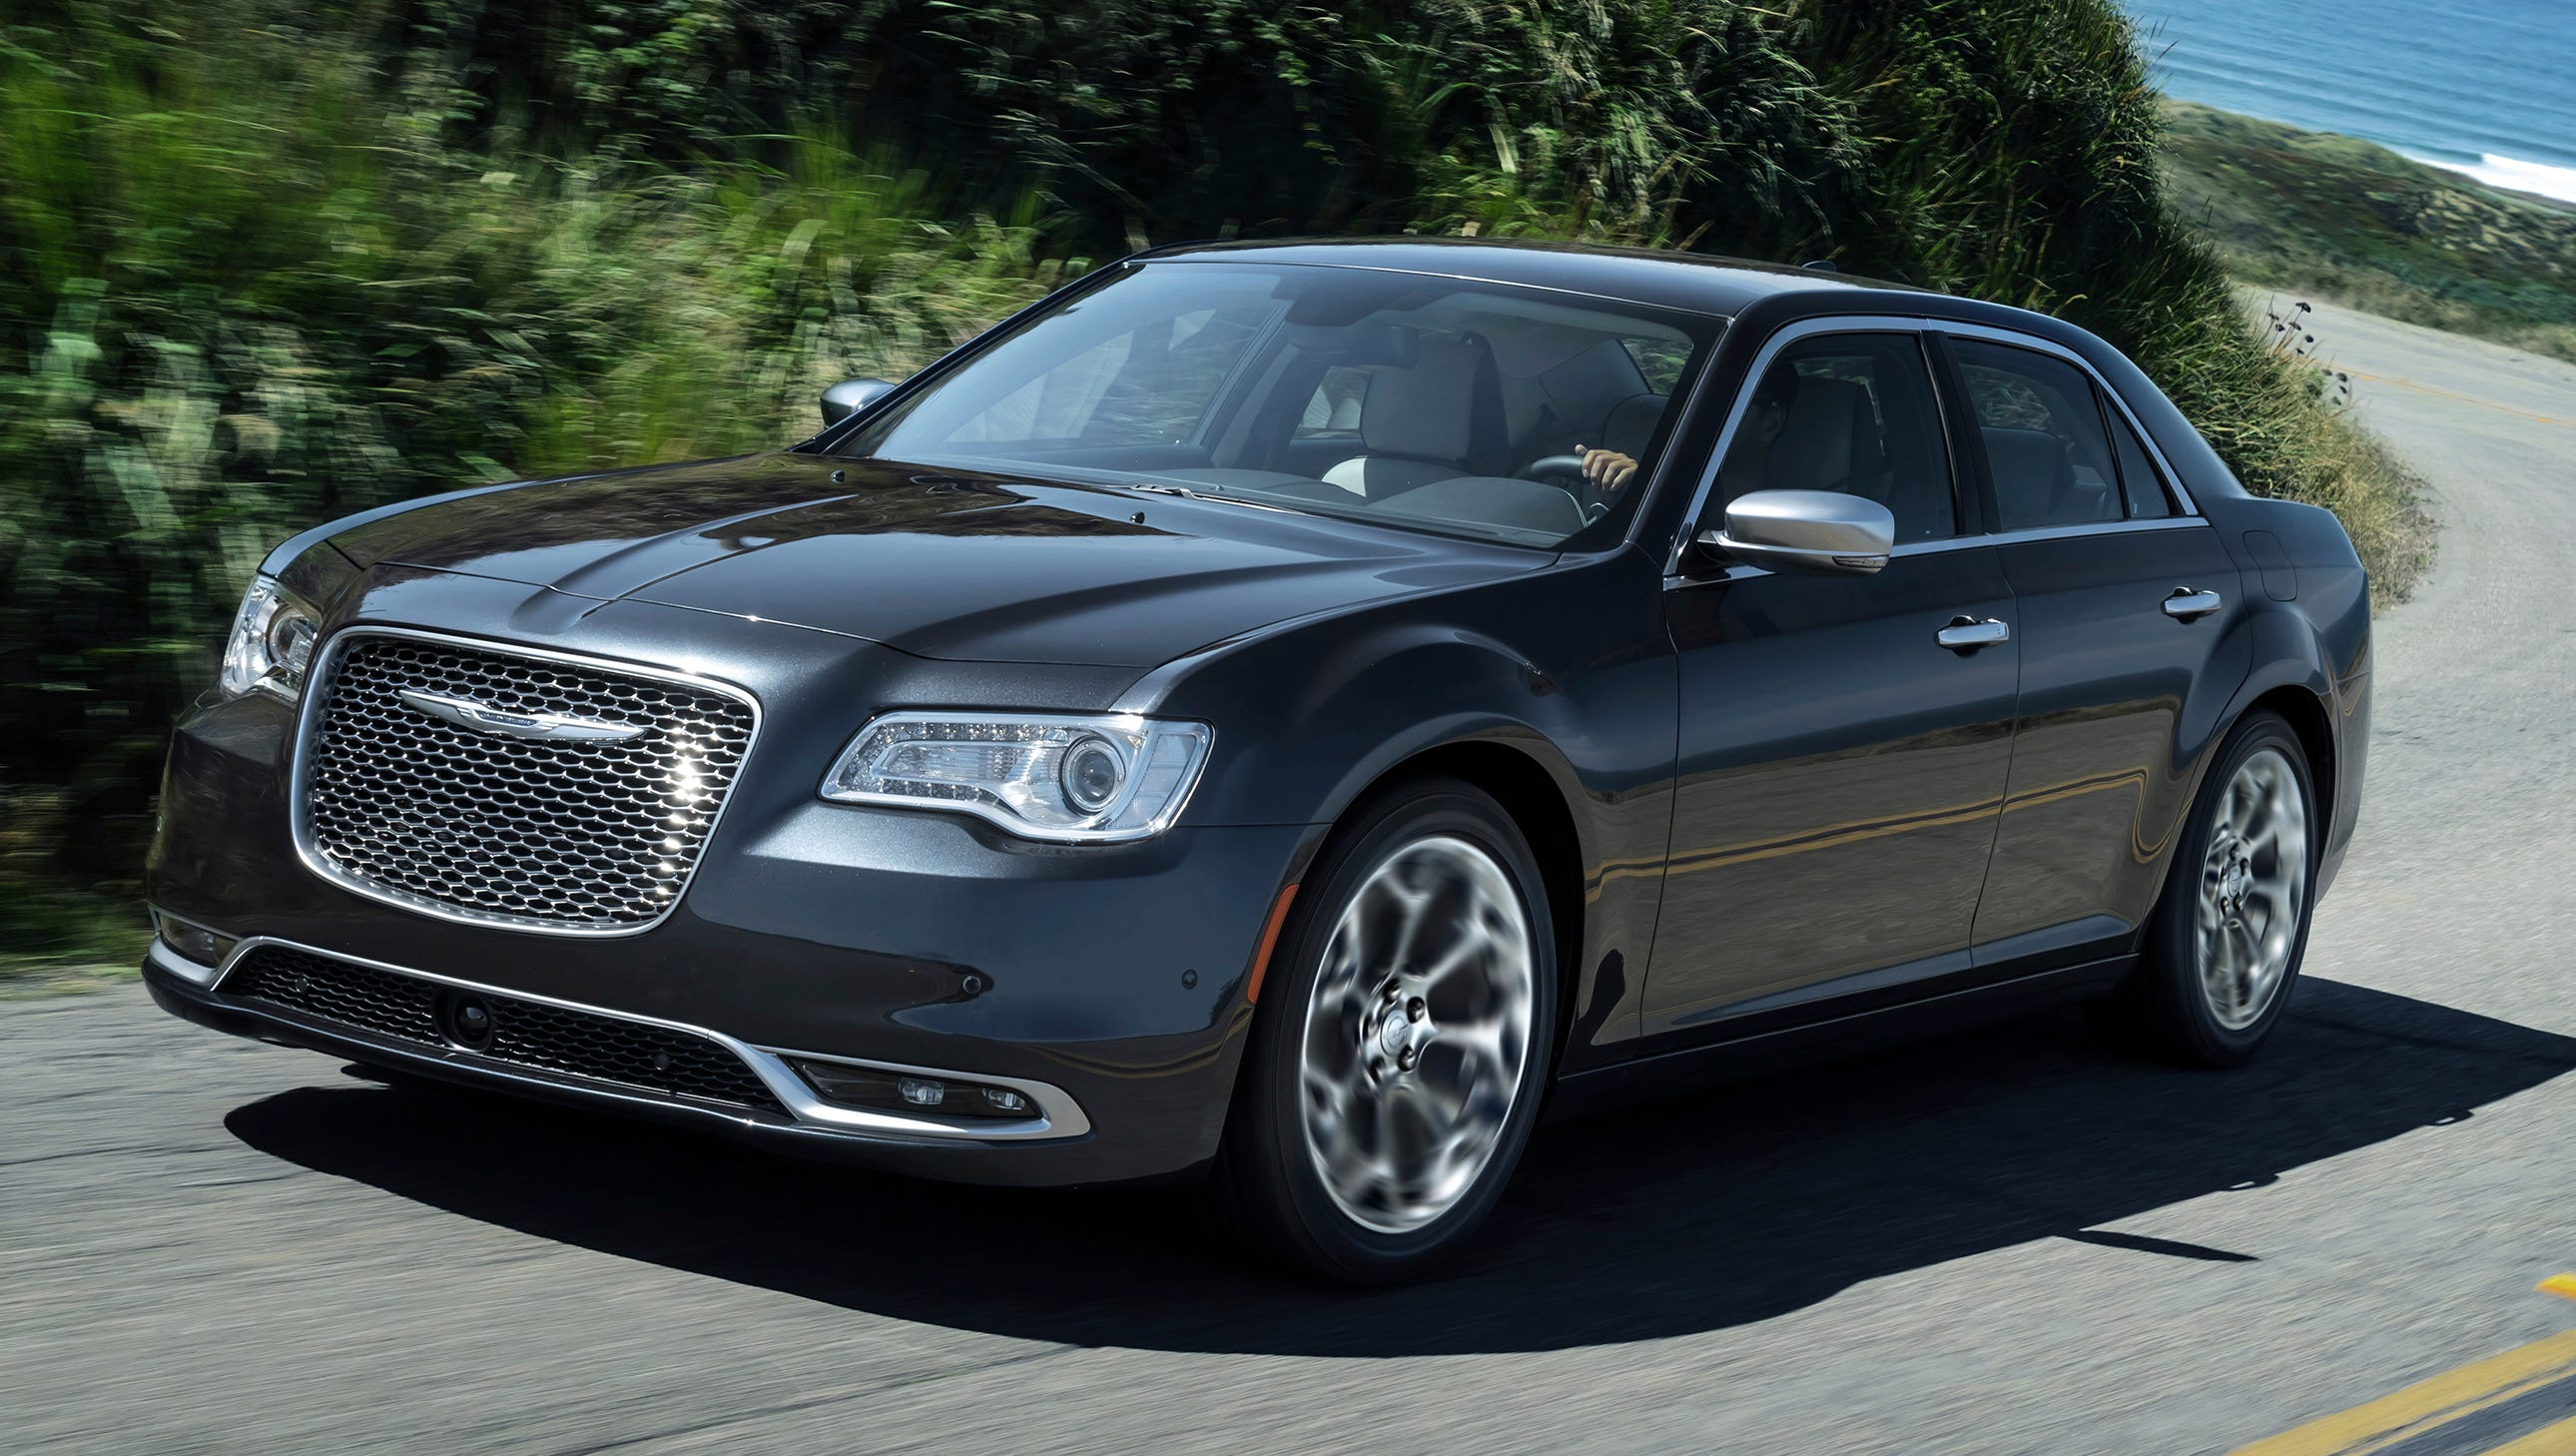 Dodge Fiat And Chrysler Are Saved But For How Long